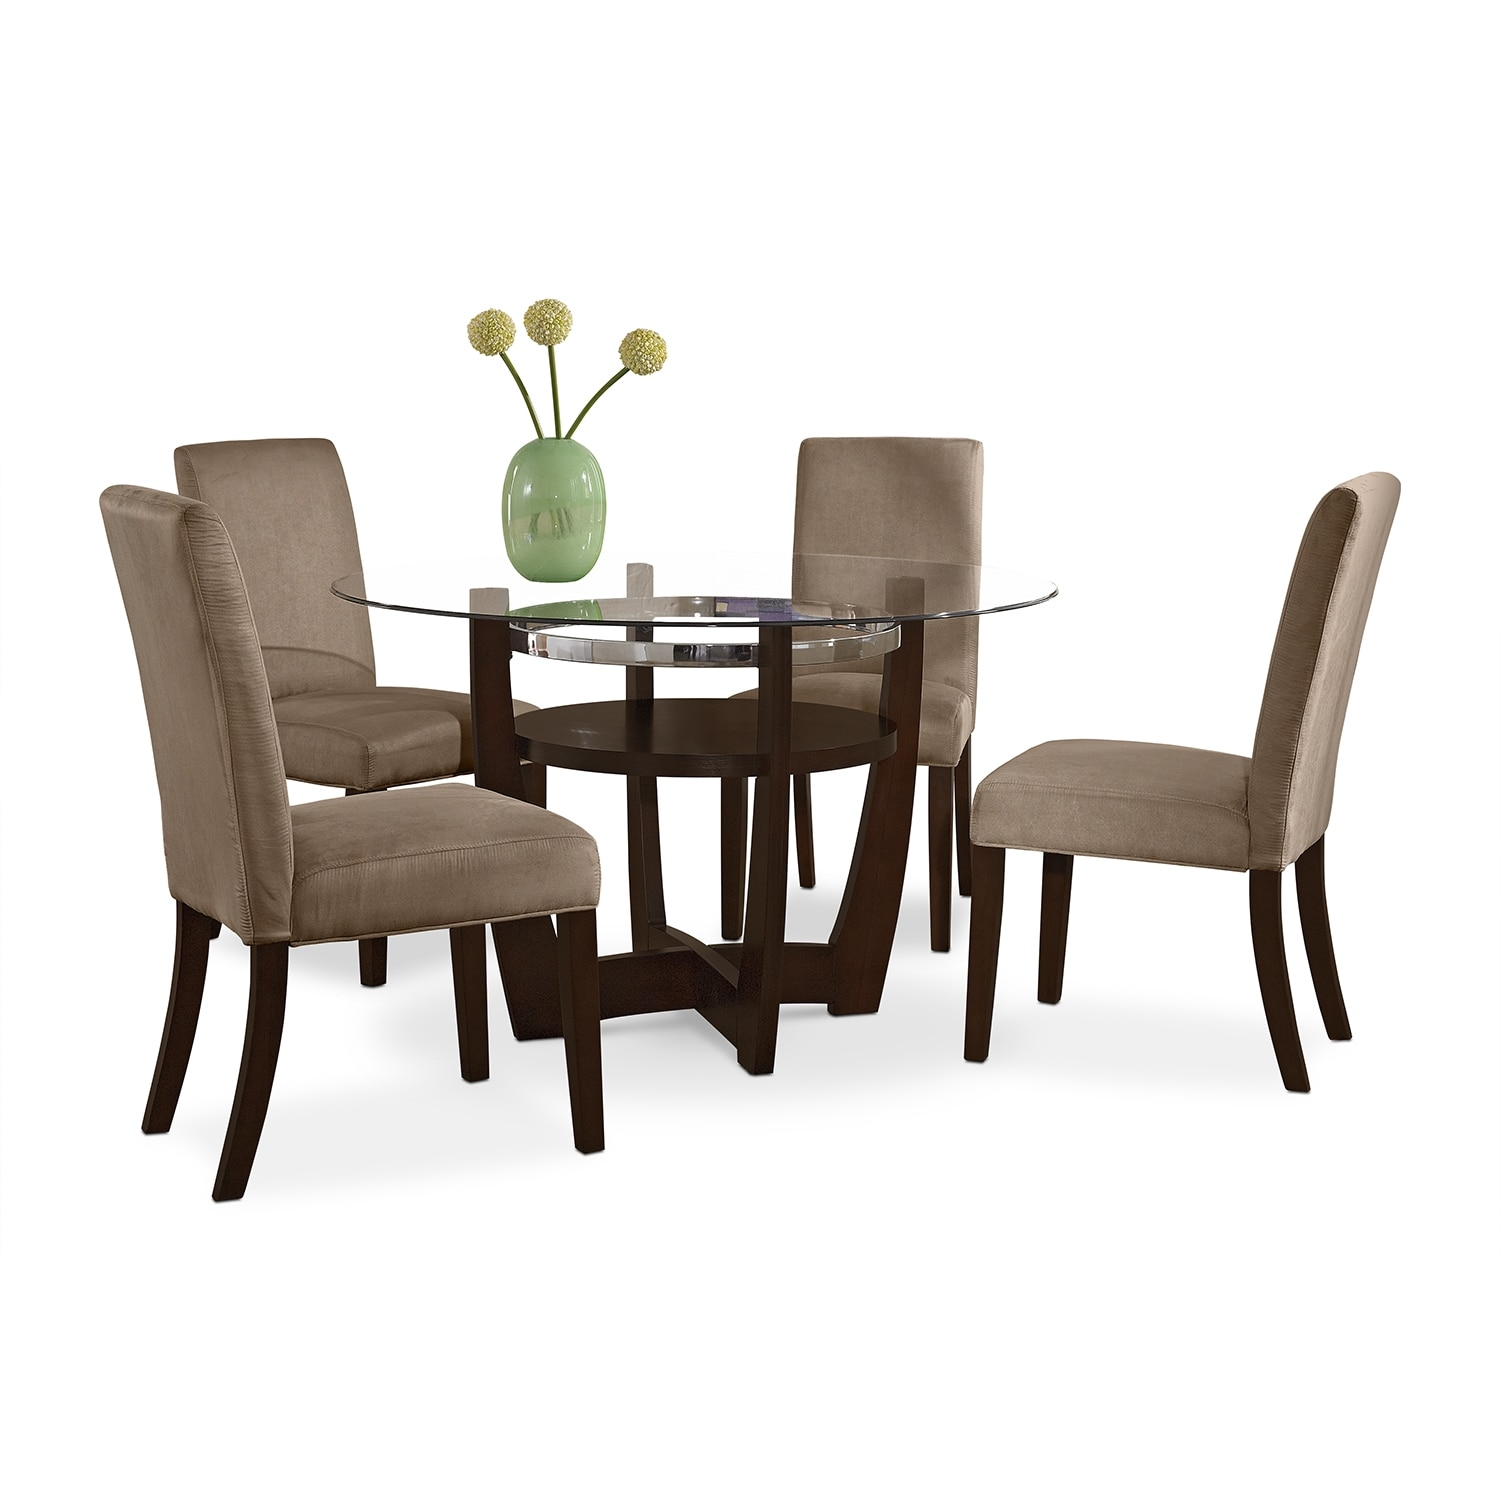 Alcove Dinette with 4 Side Chairs - Beige